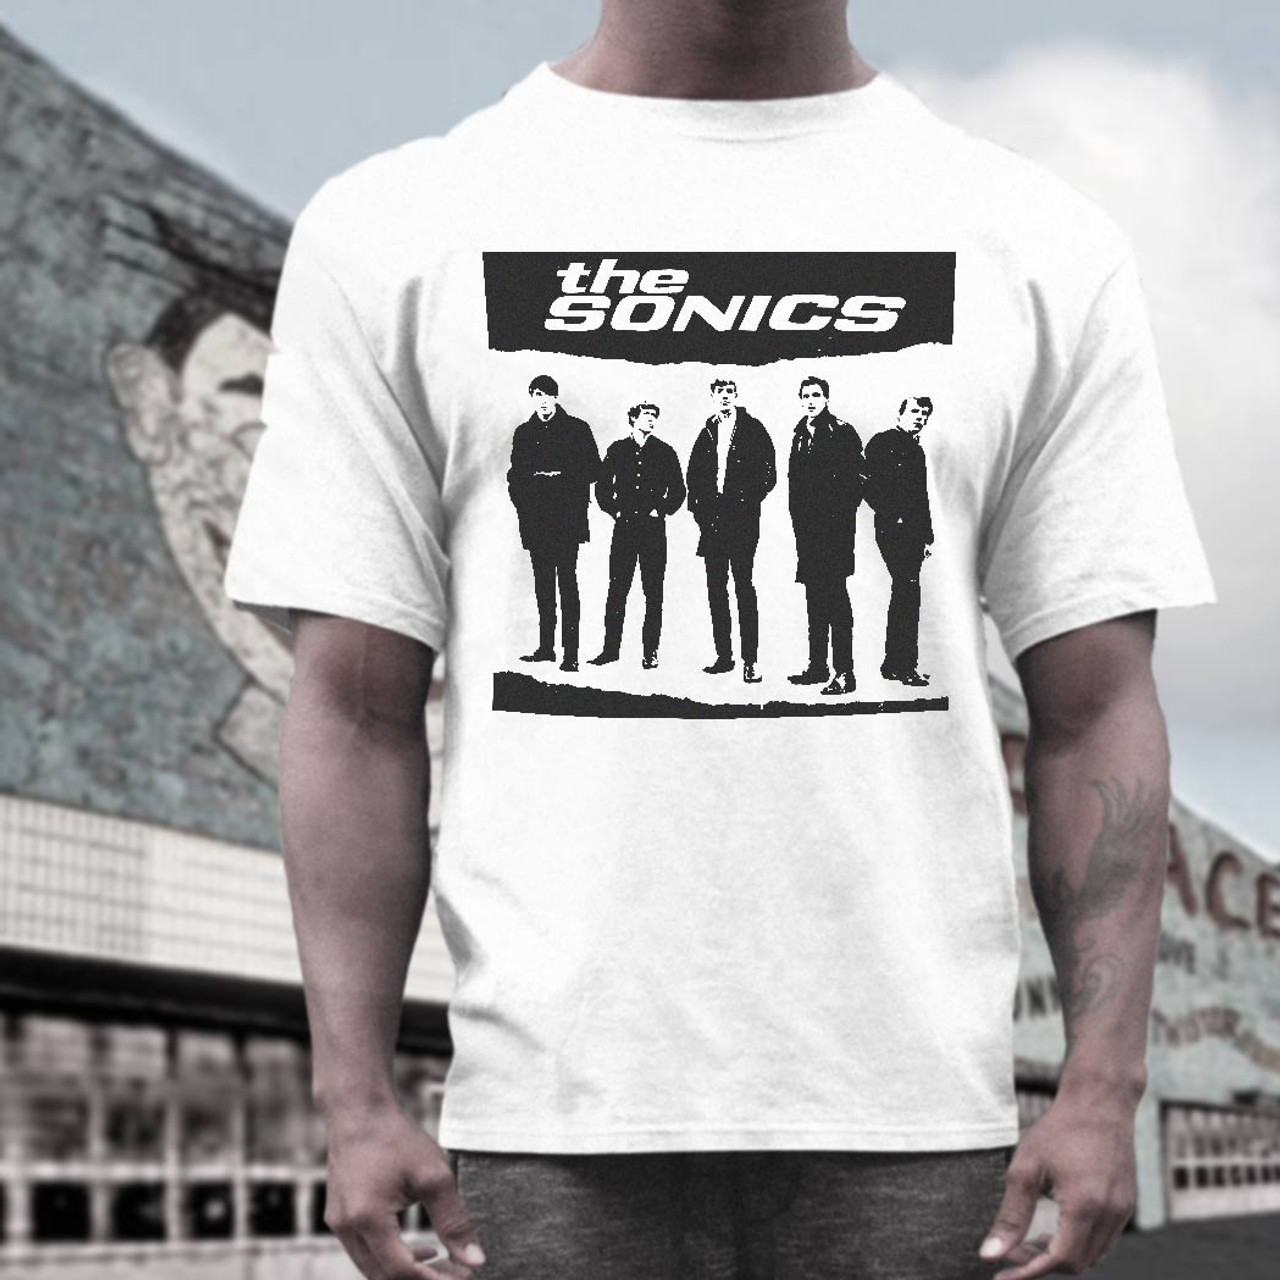 the Sonics    T shirt      band  on white